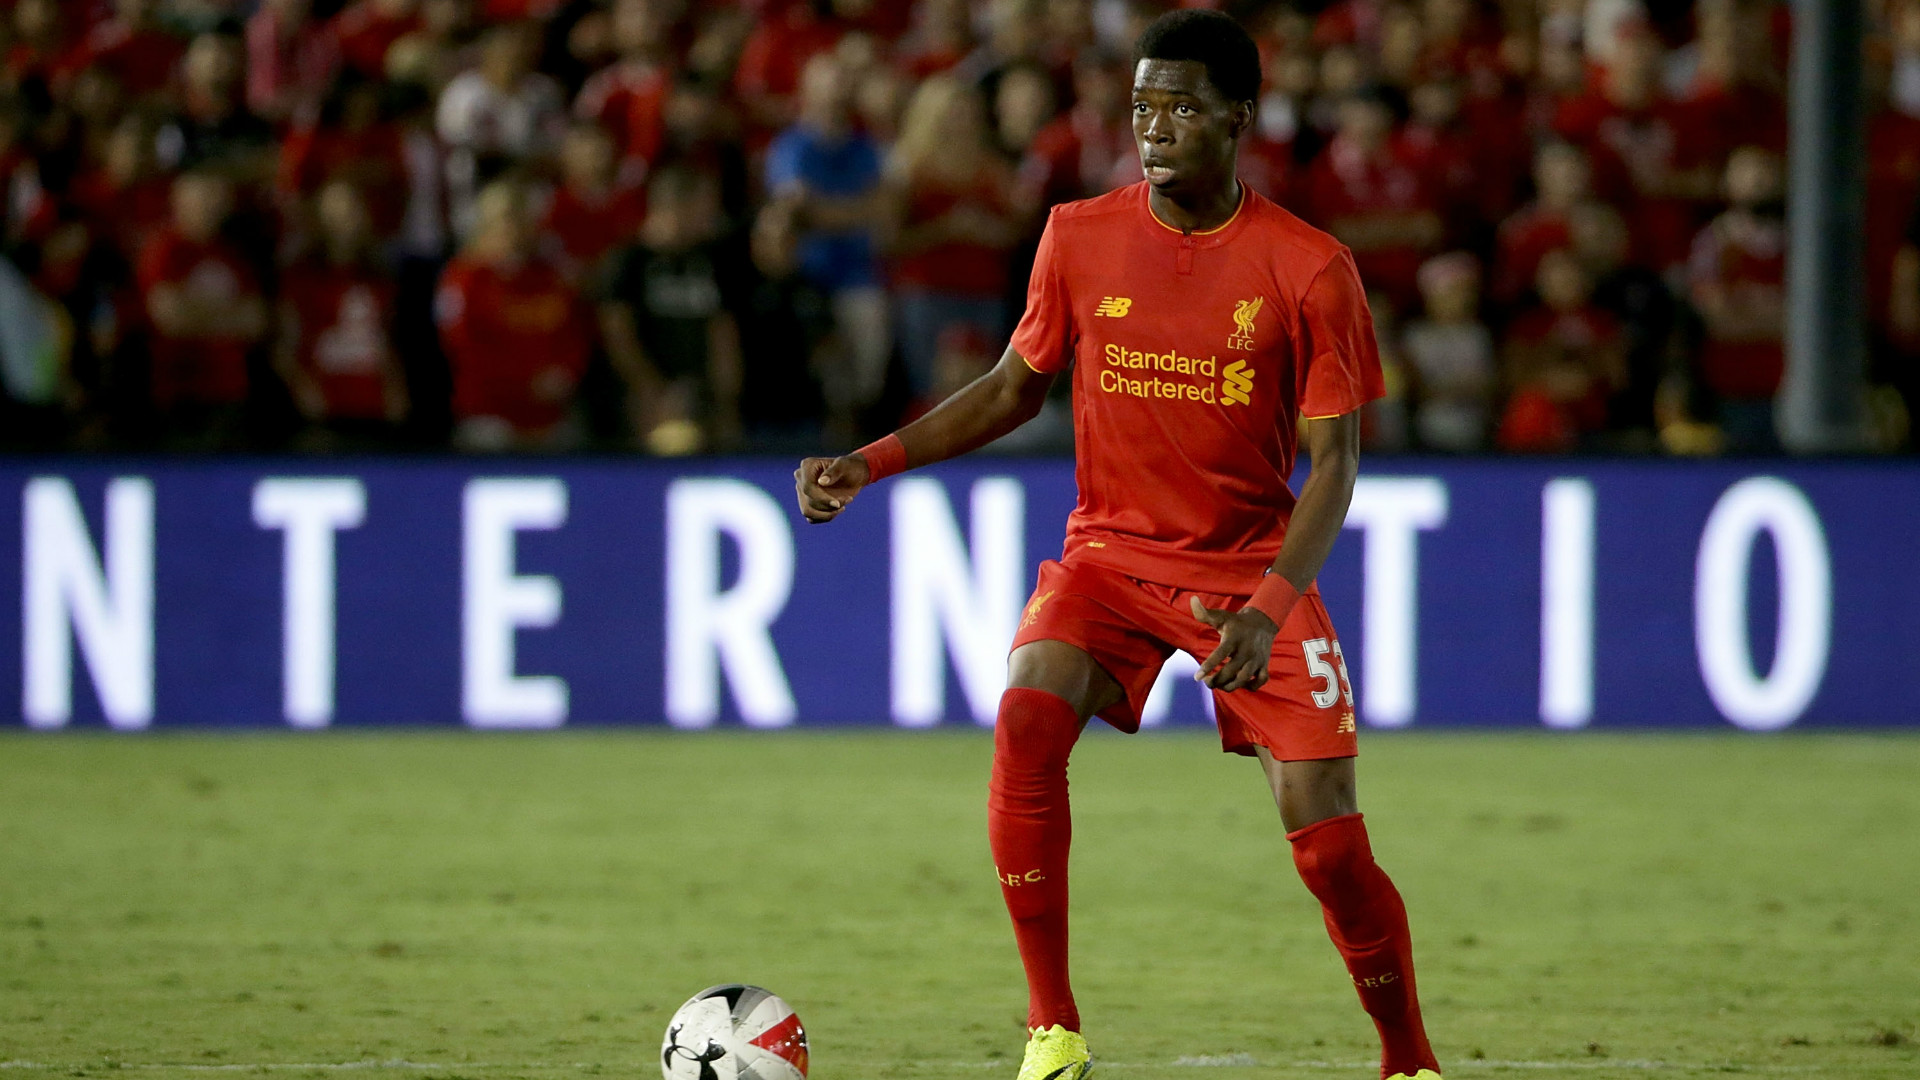 Ovie Ejaria playing for Liverpool.